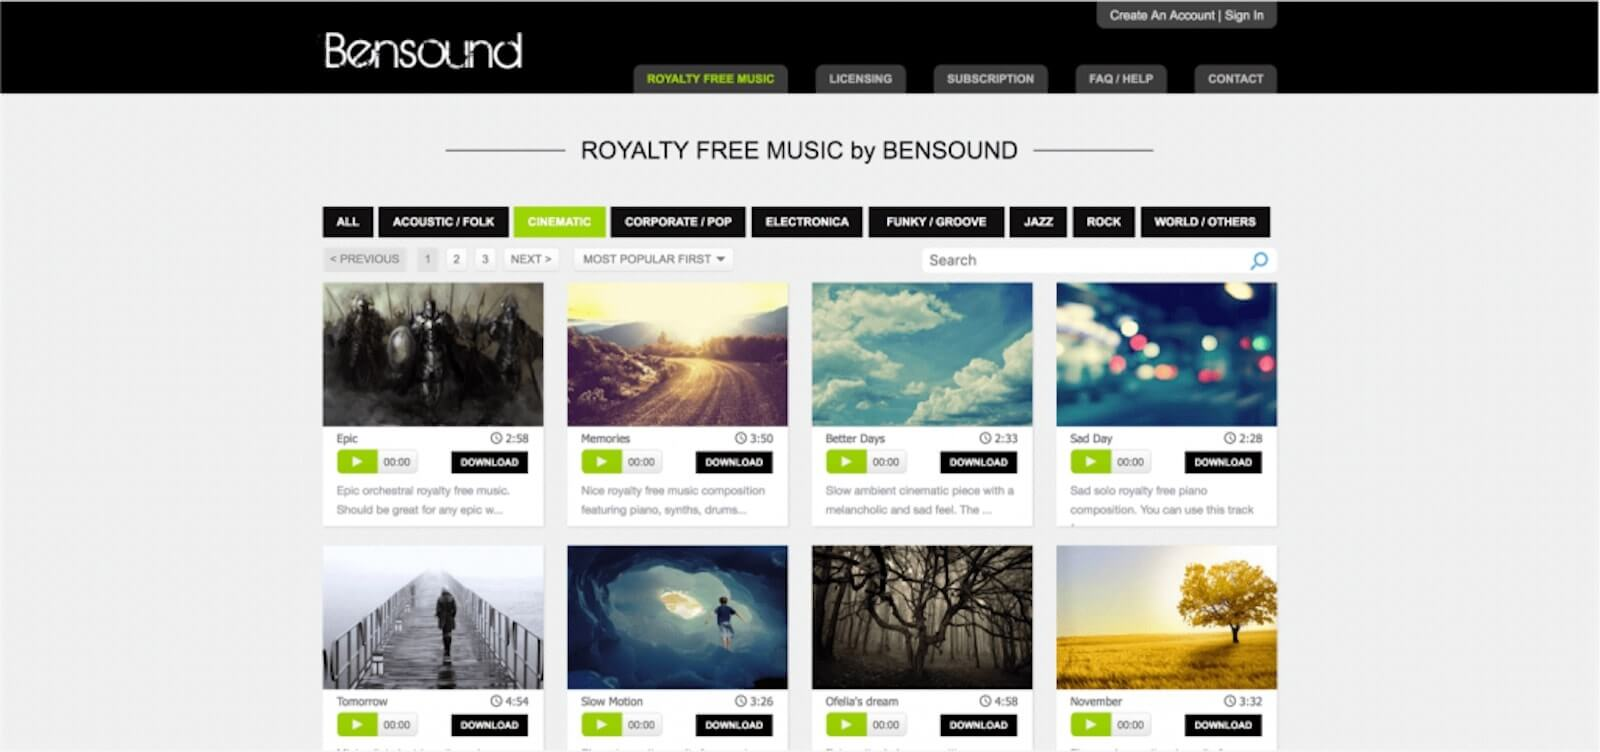 18 Best Royalty Free Music and Stock Music Sites of 2019